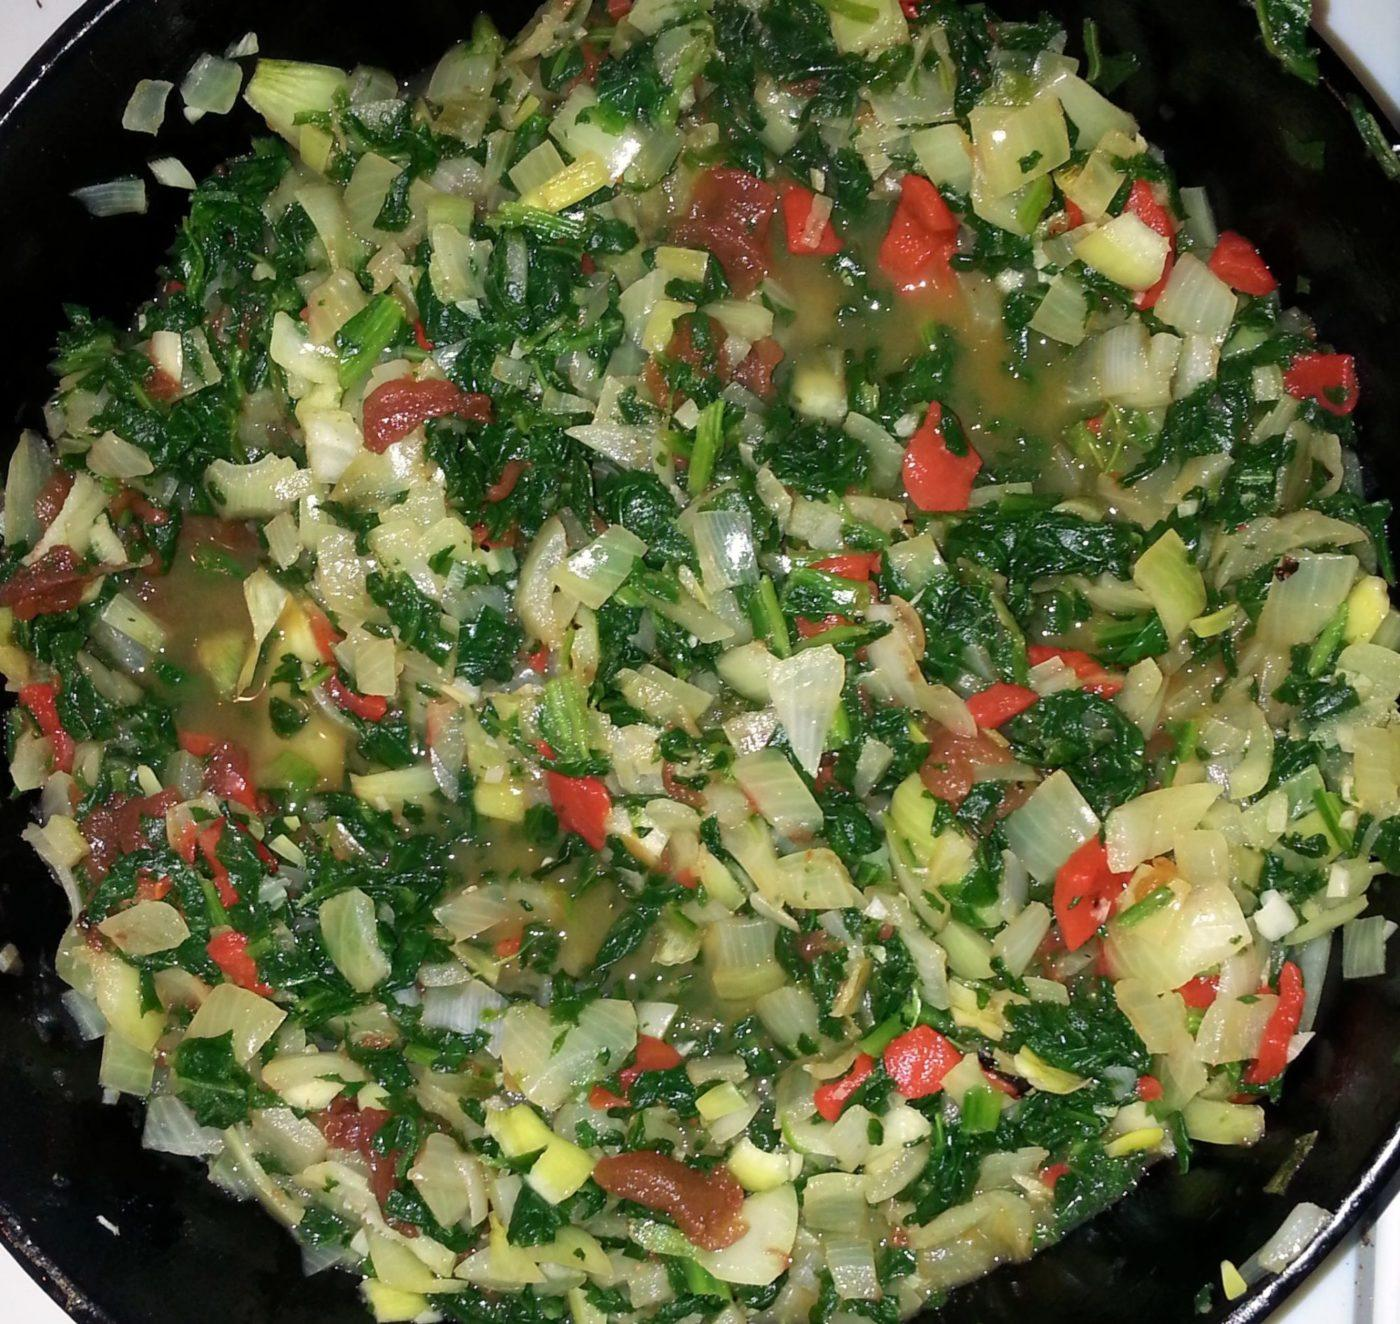 Recipe: Slow cooker spinach and red pepper strata